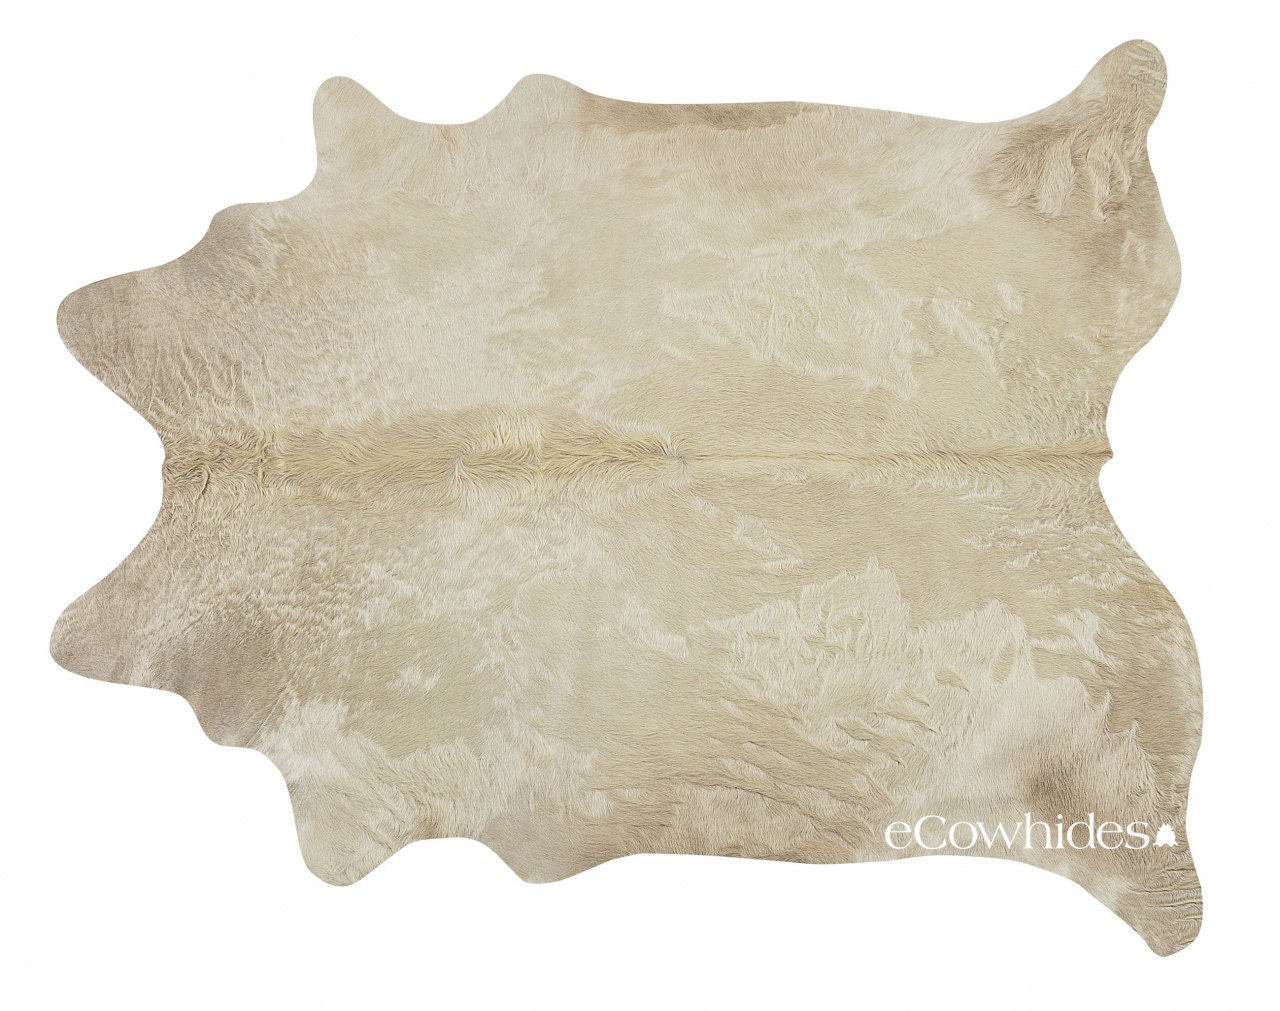 Champagne Brazilian Cowhide Rug Cow Hide Rugs Large By